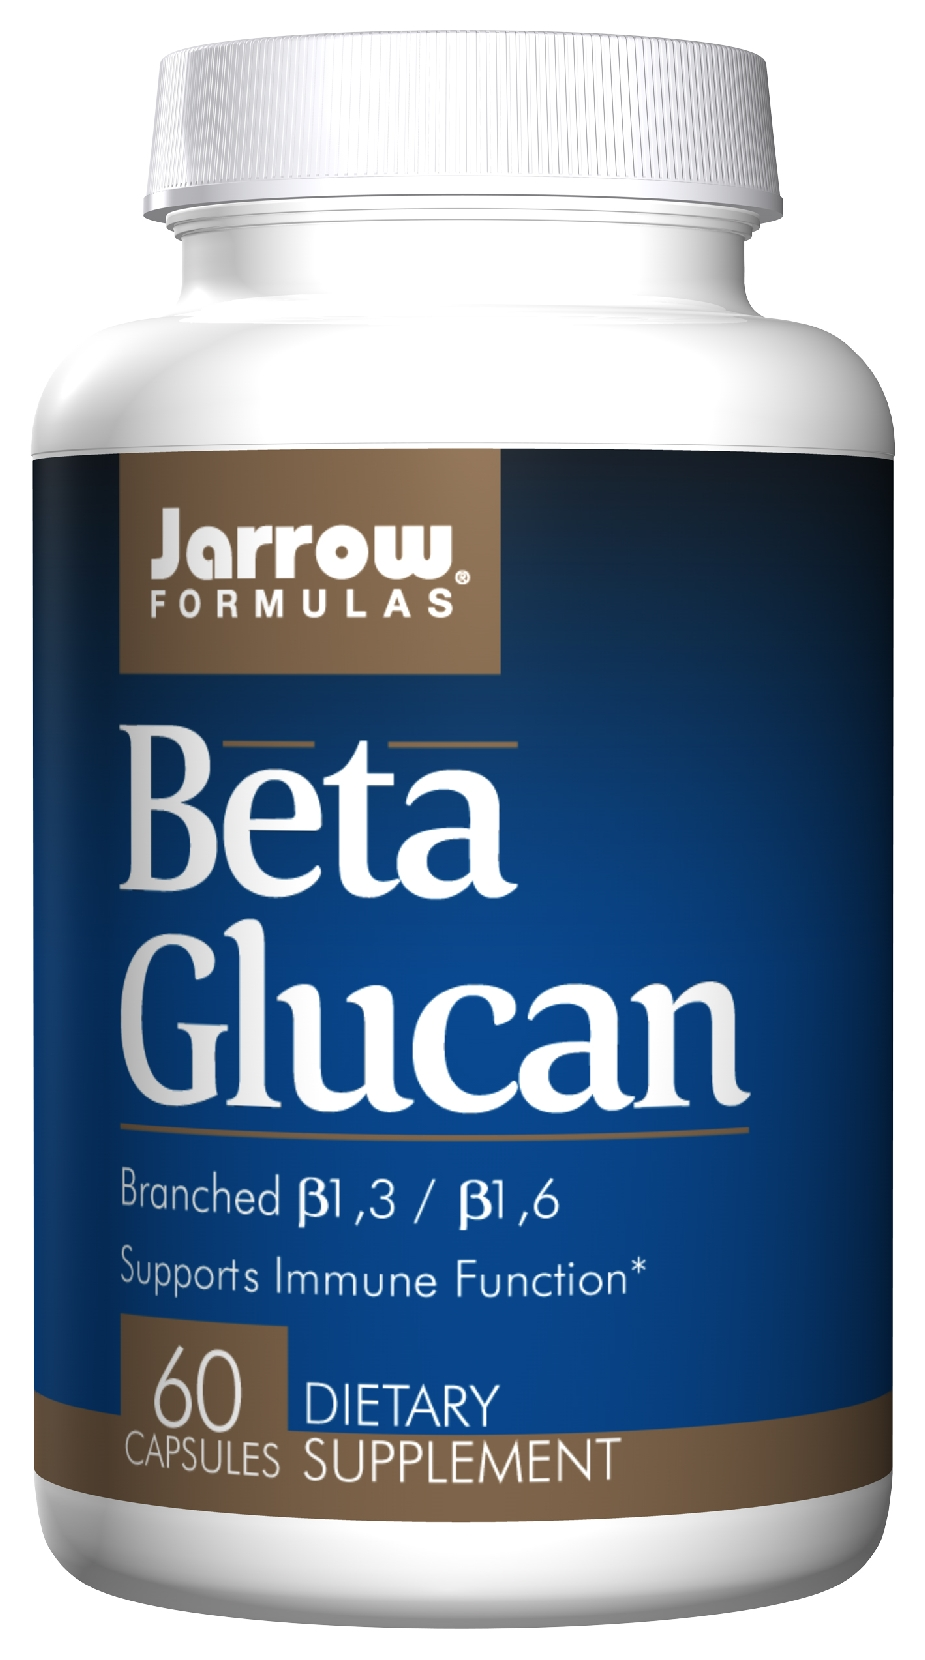 Beta Glucan 60 caps by Jarrow Formulas